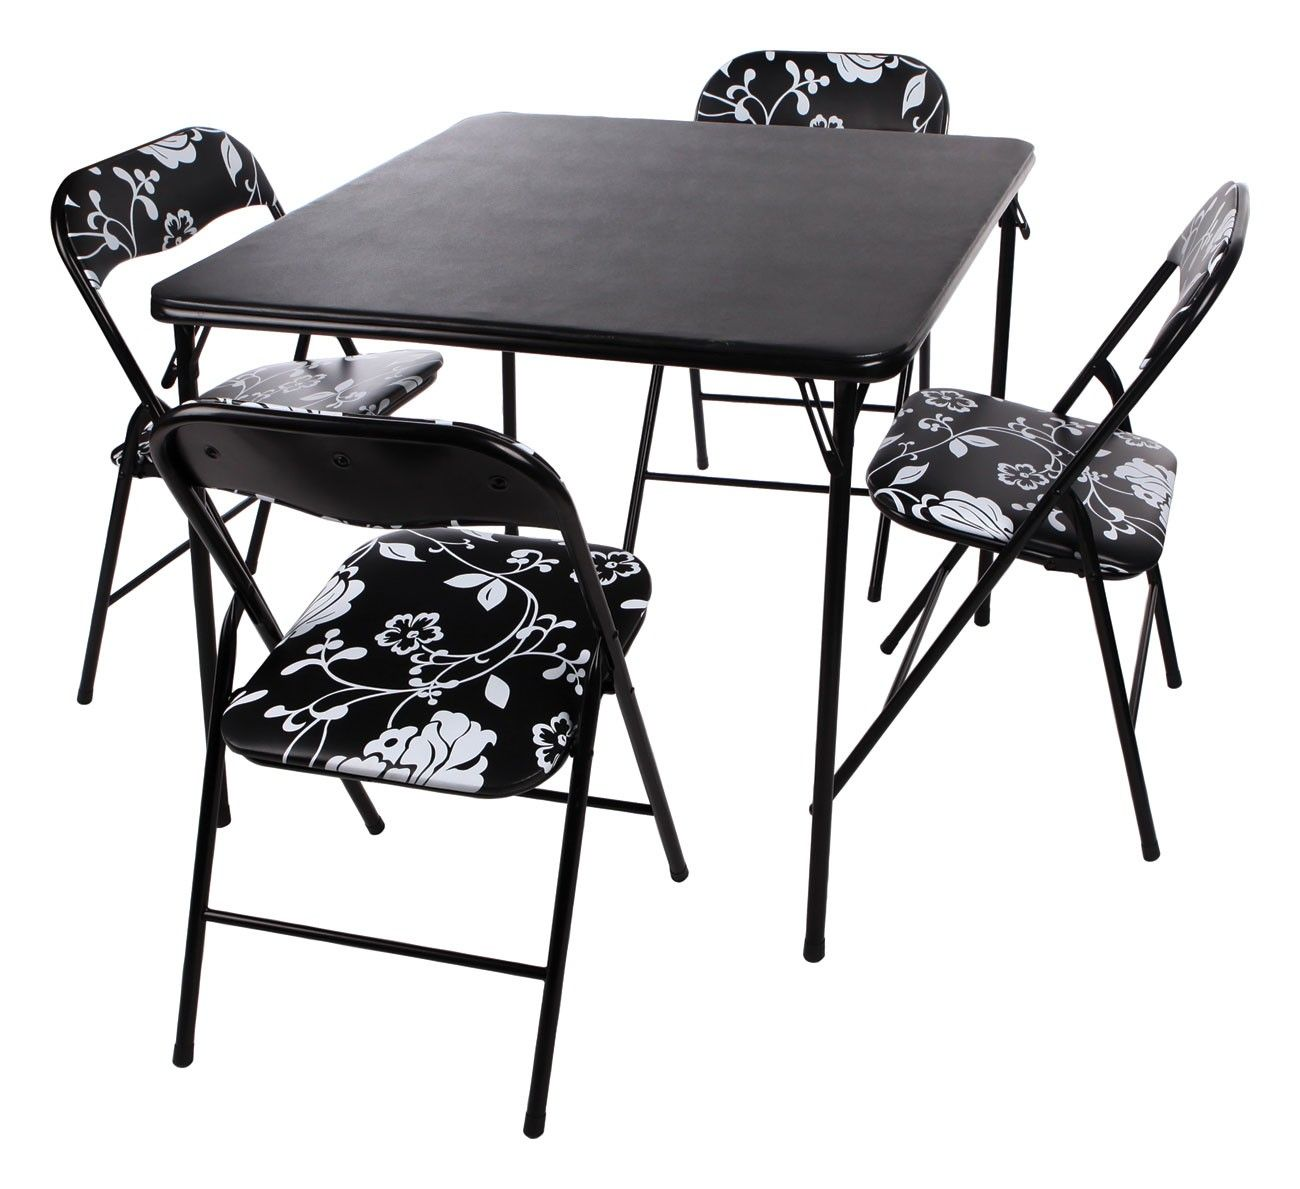 Meubles Fraser Furniture Jysk Thomas Folding Table Set Home Decor Dining Room Furniture